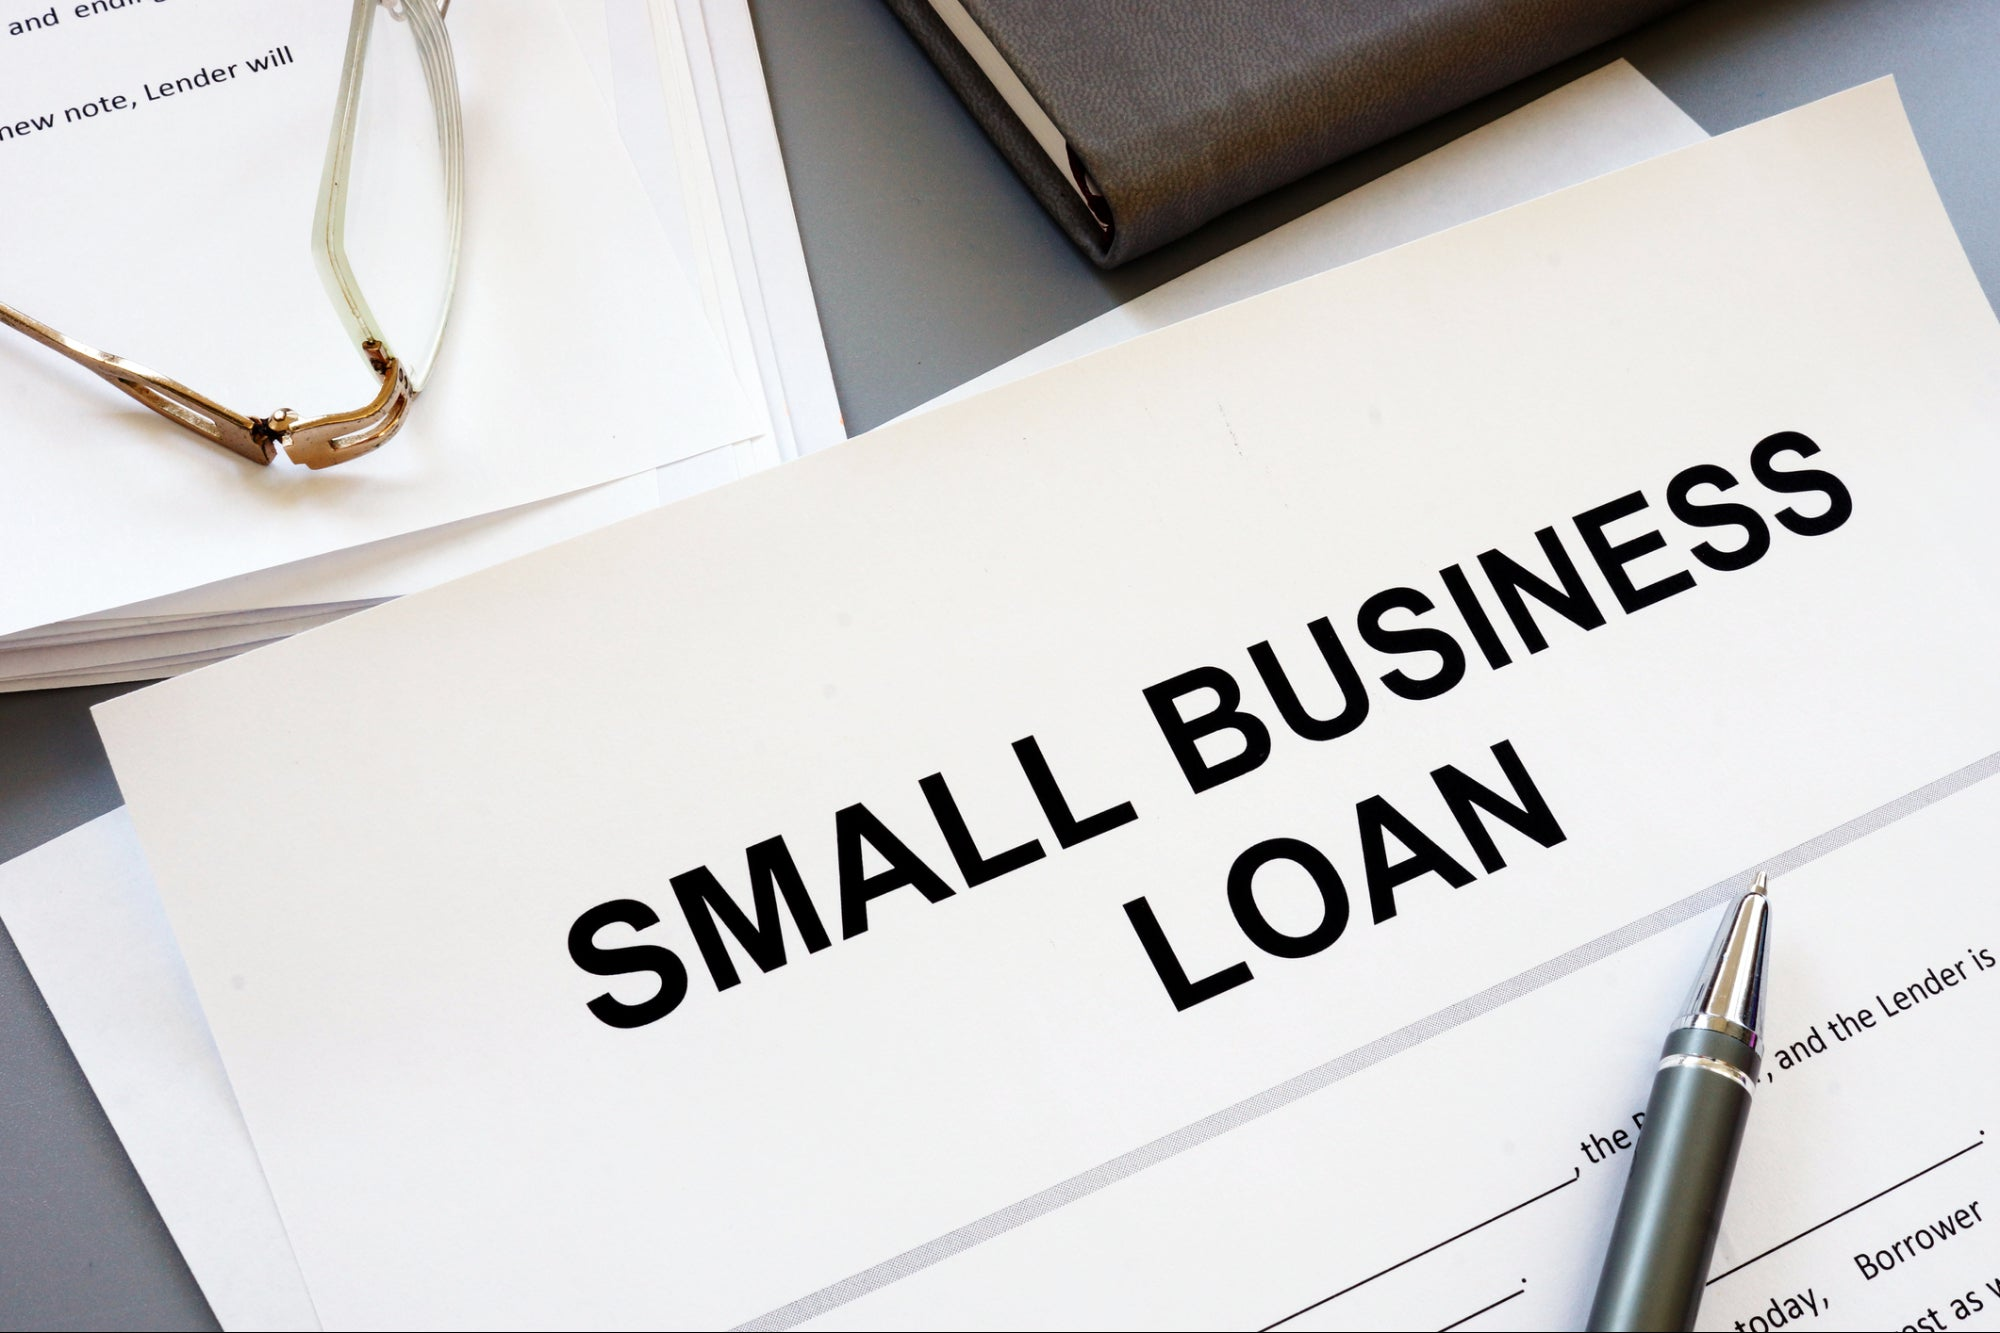 Options for Small Business Loans Beyond PPP